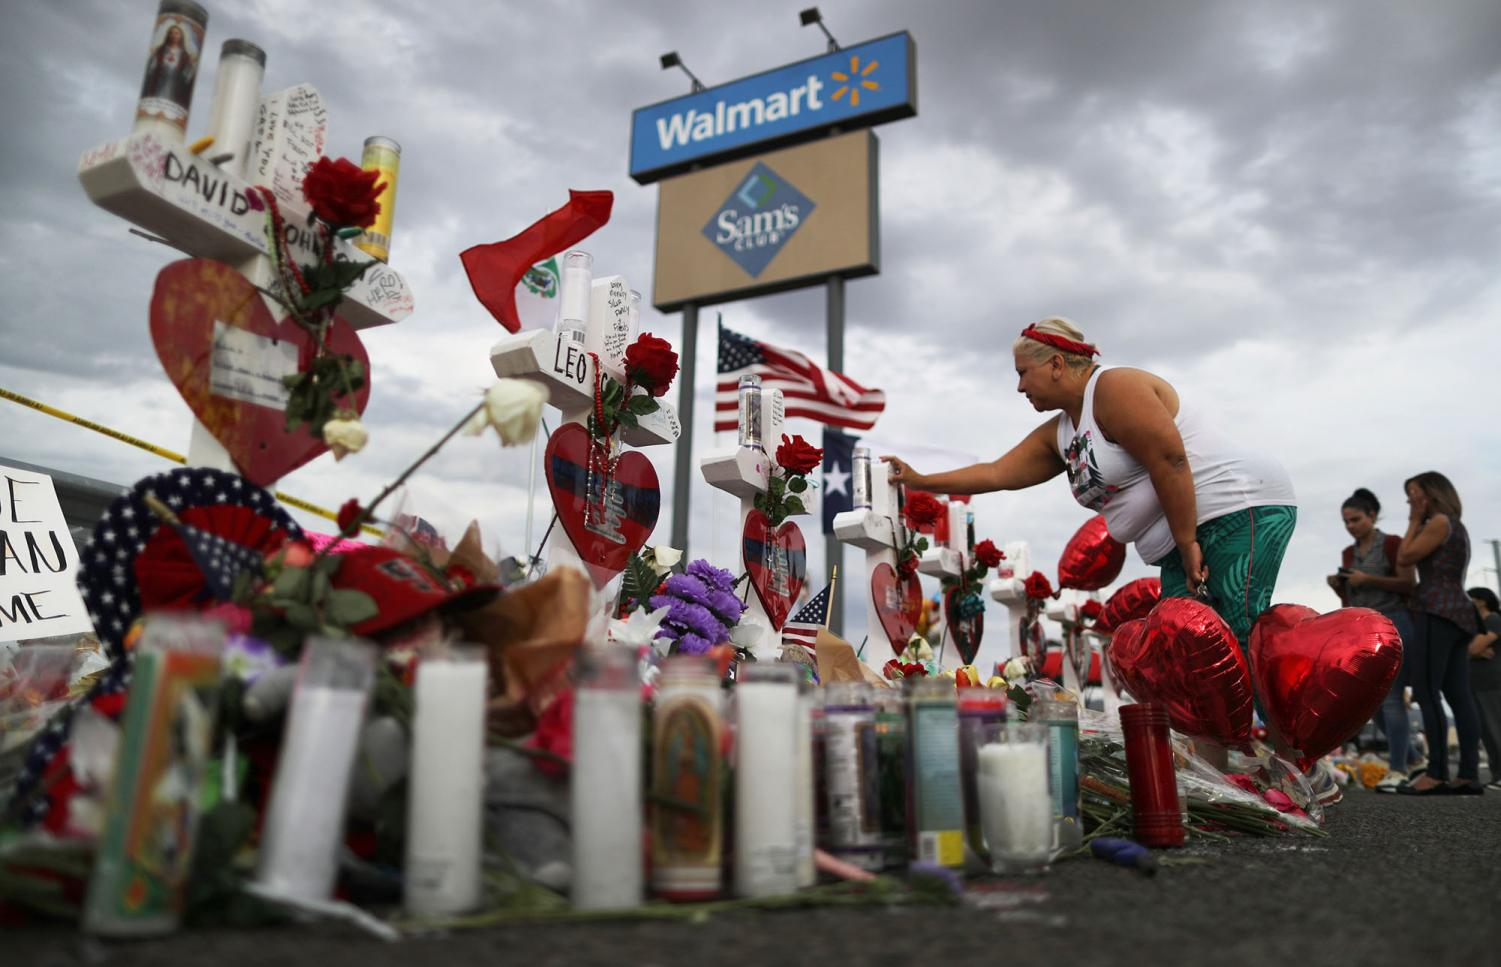 A woman touches a cross at a makeshift memorial for victims outside Walmart, near the scene of a mass shooting which left at least 22 people dead, on August 6, 2019, in El Paso, Texas. Walmart Inc. announced on Tuesday, Sept. 3, 2019m, it will phase out sales of ammunition for handguns and short-barrel rifles. (Mario Tama/Getty Images/TNS)